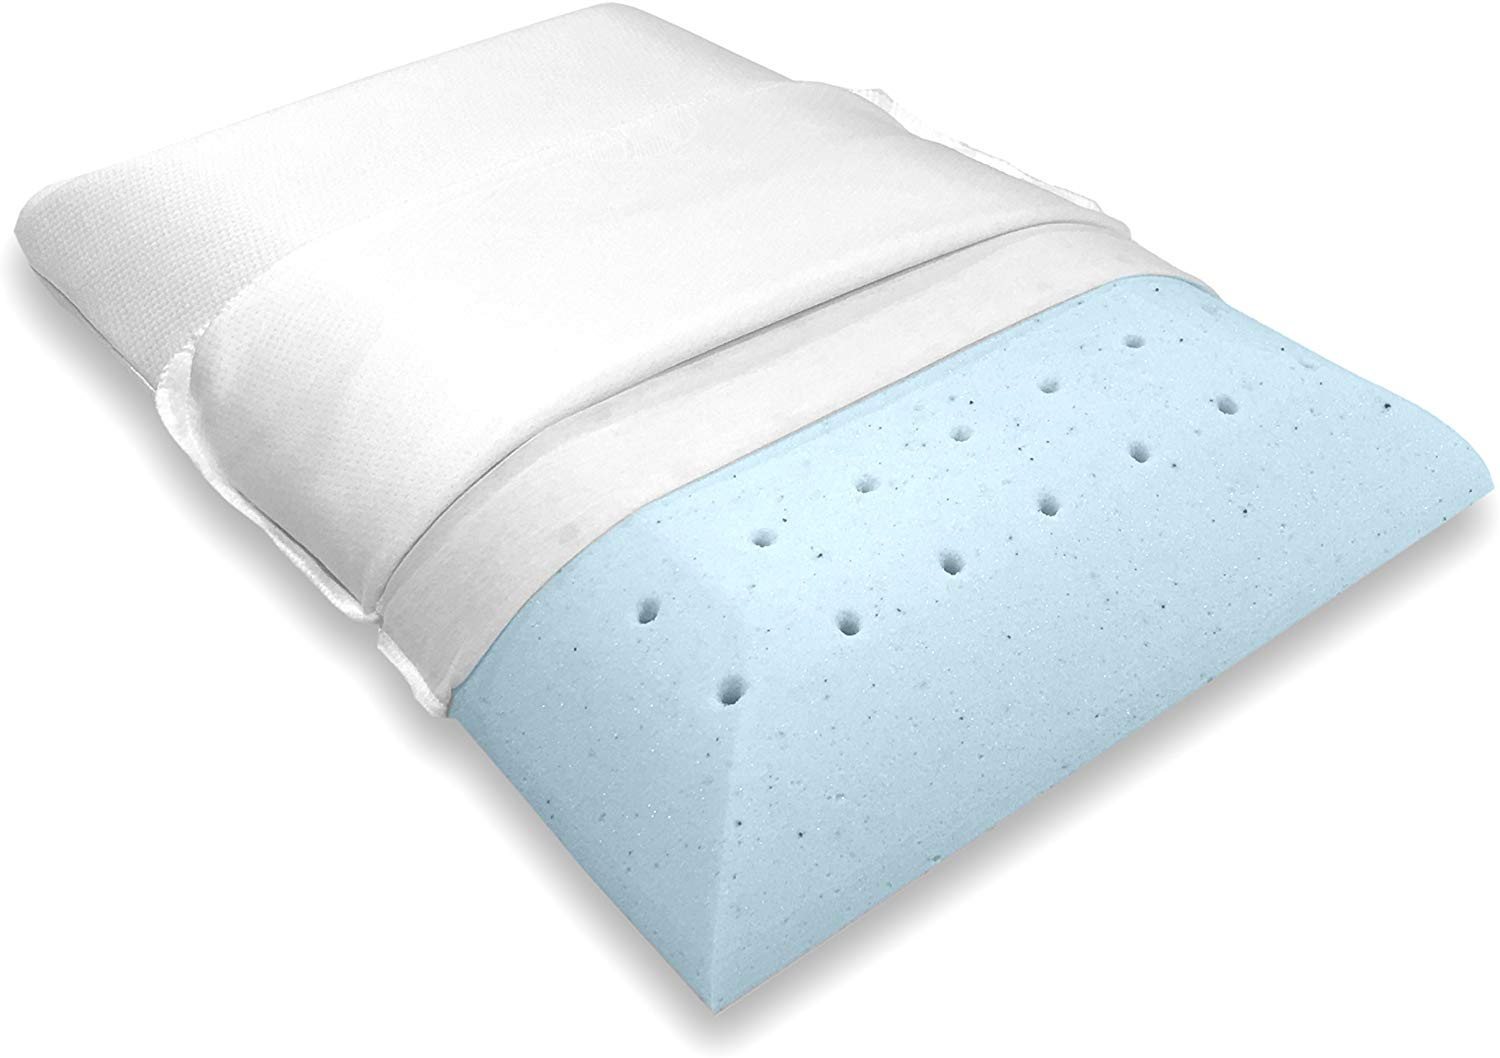 Bluewave Bedding Best Flat Pillow review by www.dailysleep.org